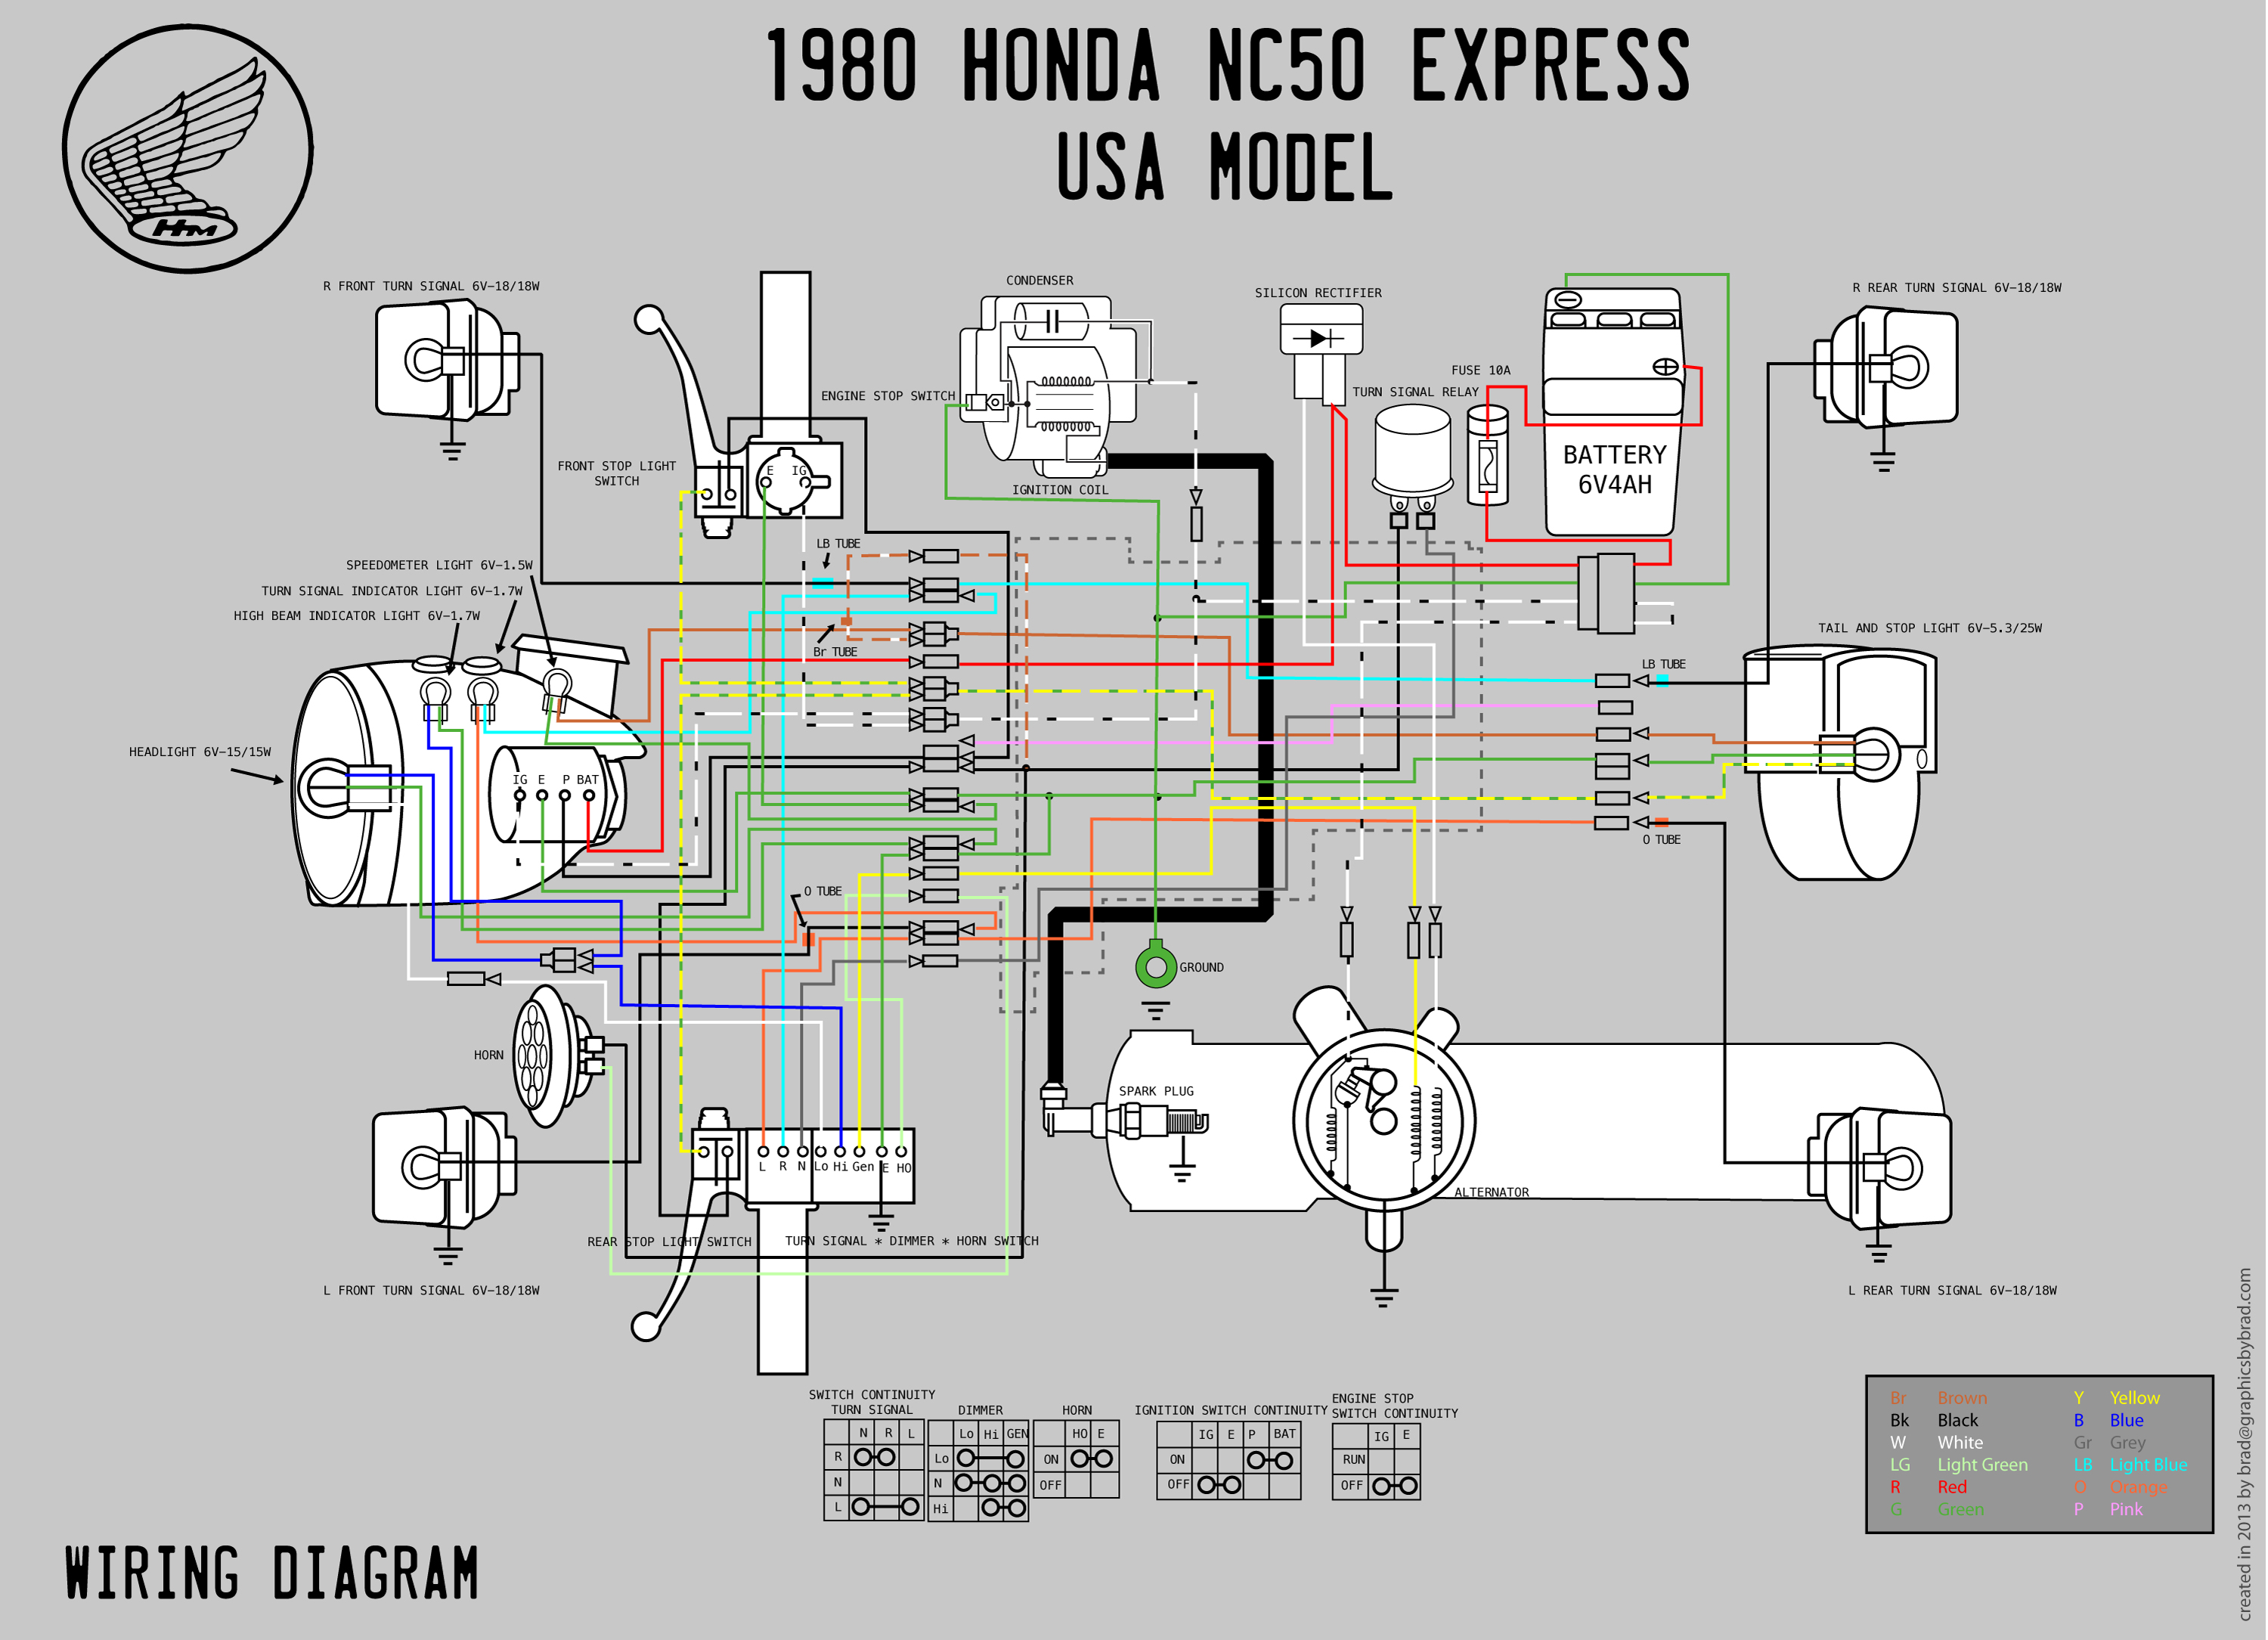 1980 nc50 wiring lrg 1980 honda express wiring diagram 1980 wiring diagrams collection tg1 express wiring diagram at eliteediting.co